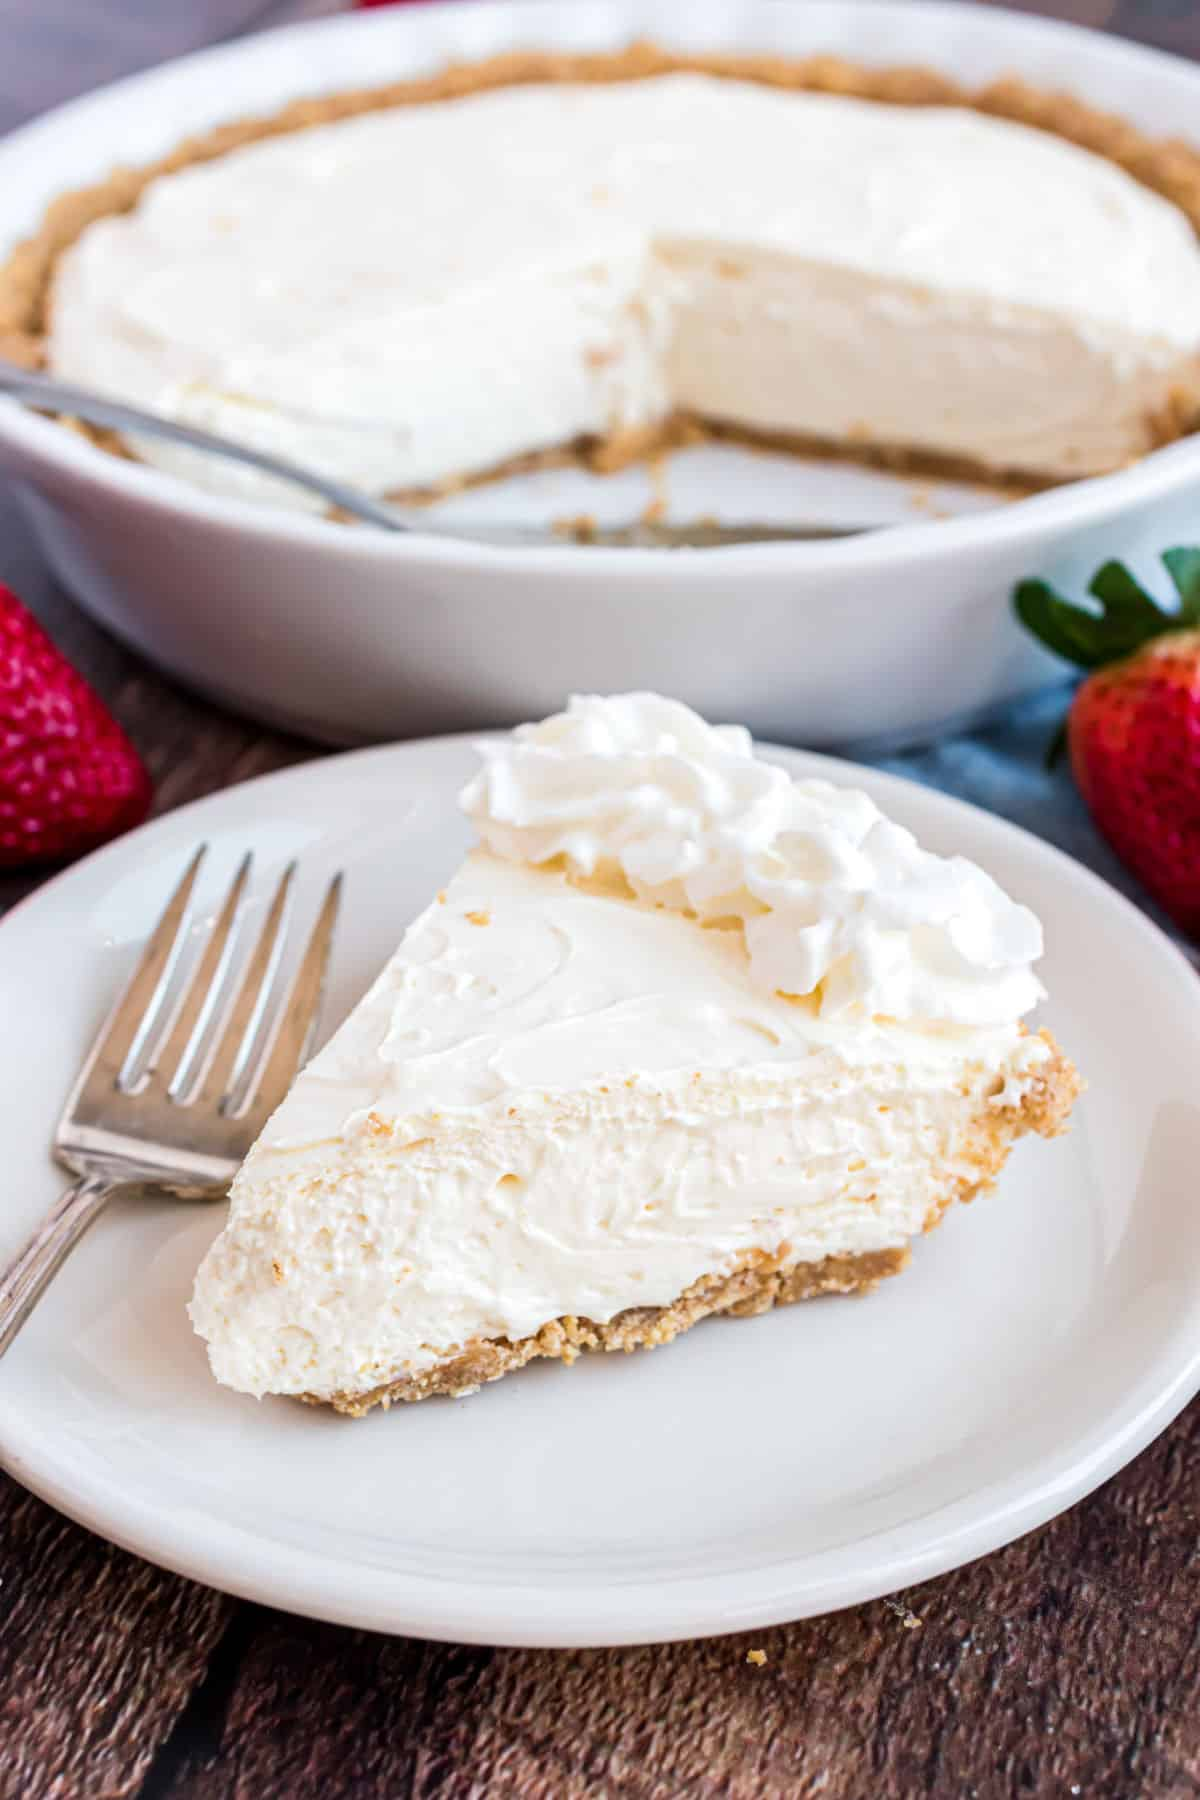 No bake cheesecake sliced and garnished with whipped cream.